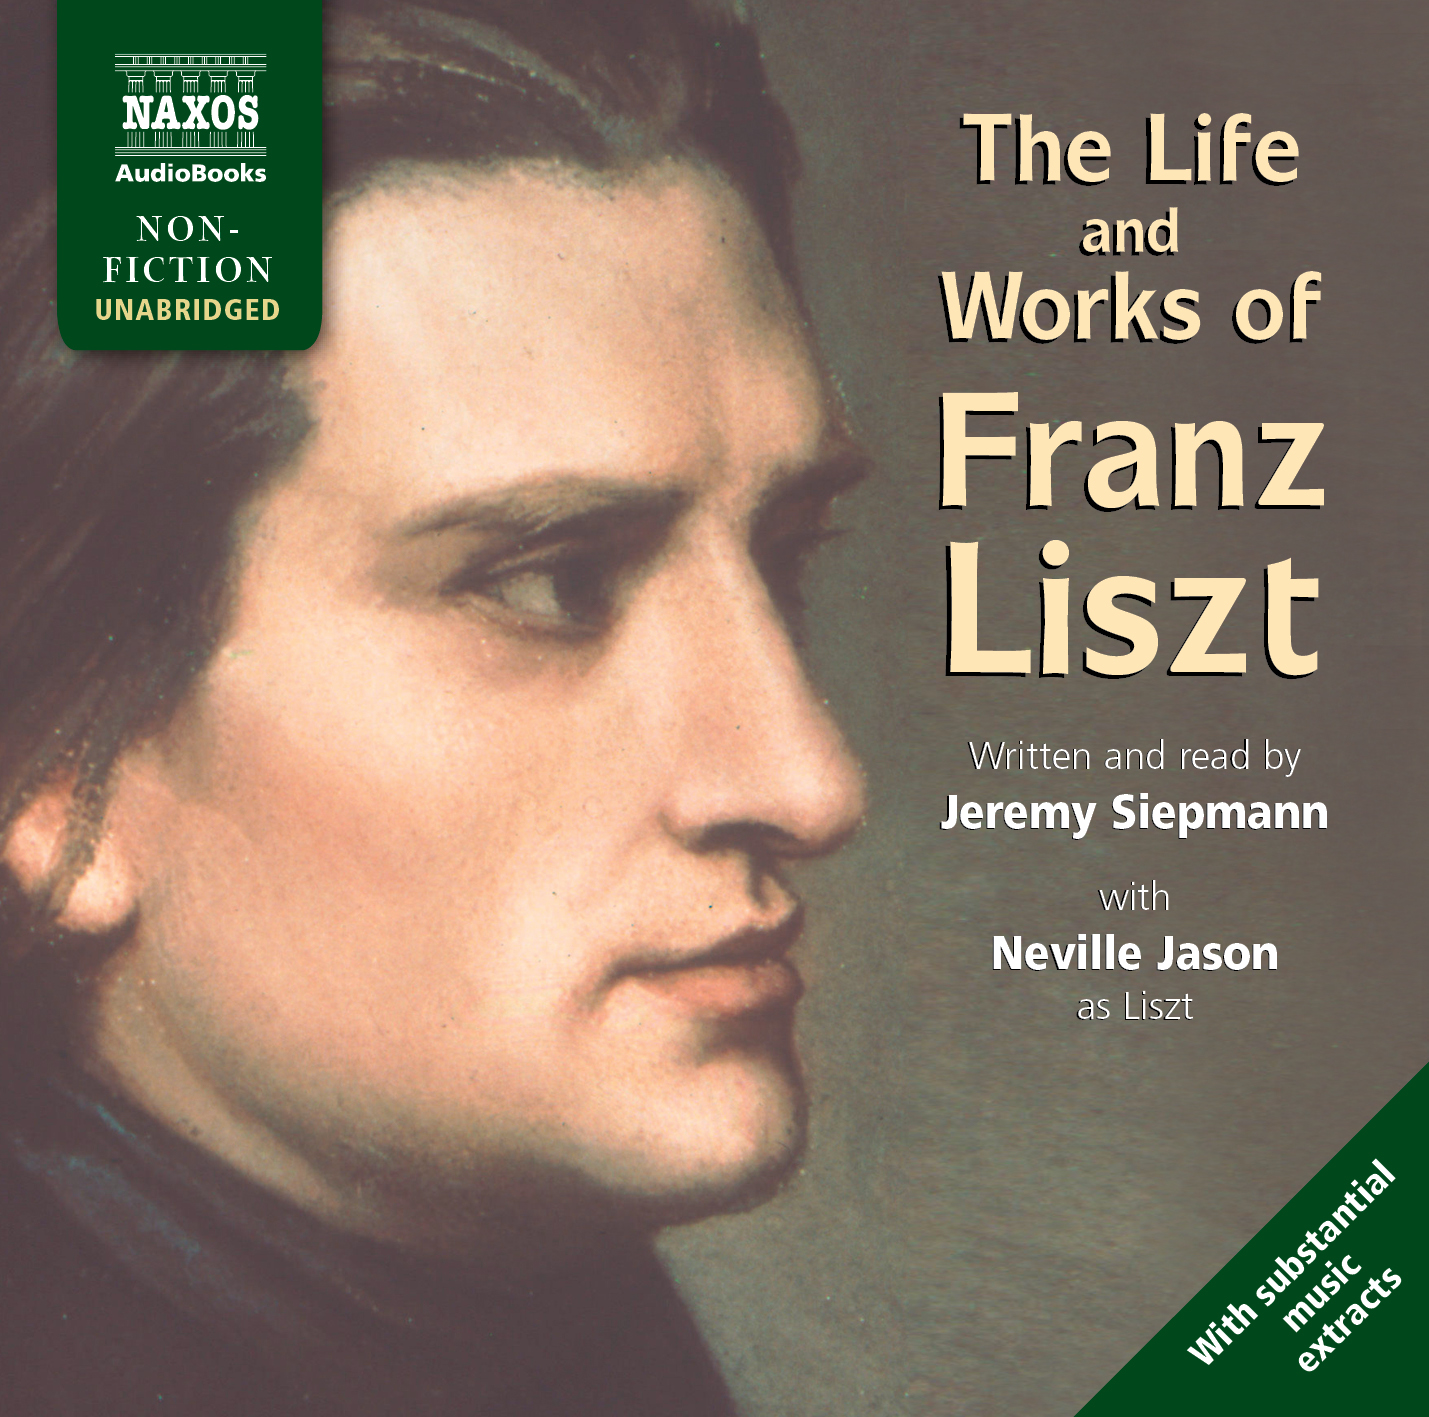 an analysis of franz liszt as one of many classical composers